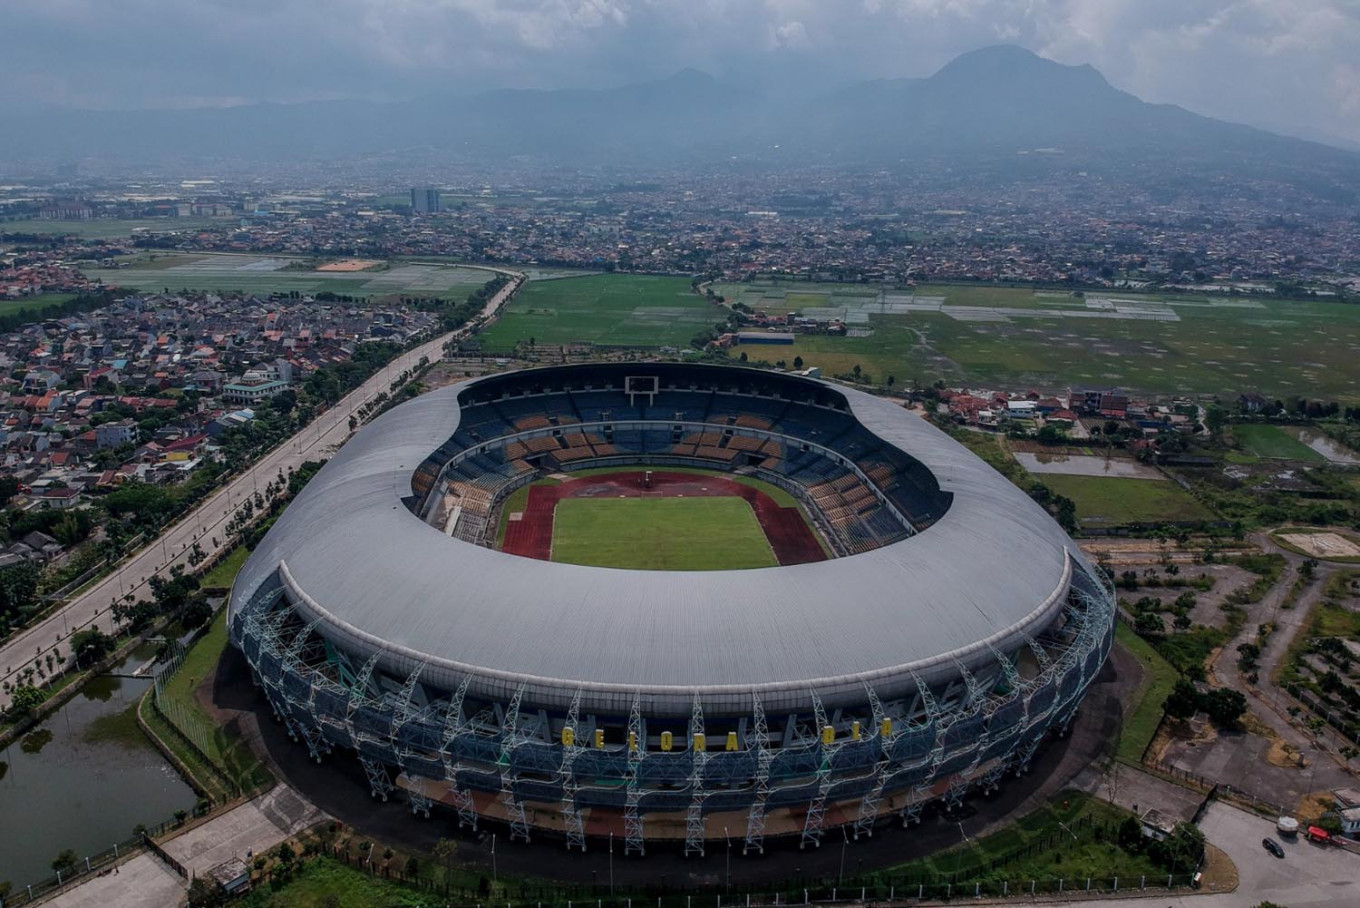 Indonesia's soccer leagues delayed until November amid COVID-19 concerns